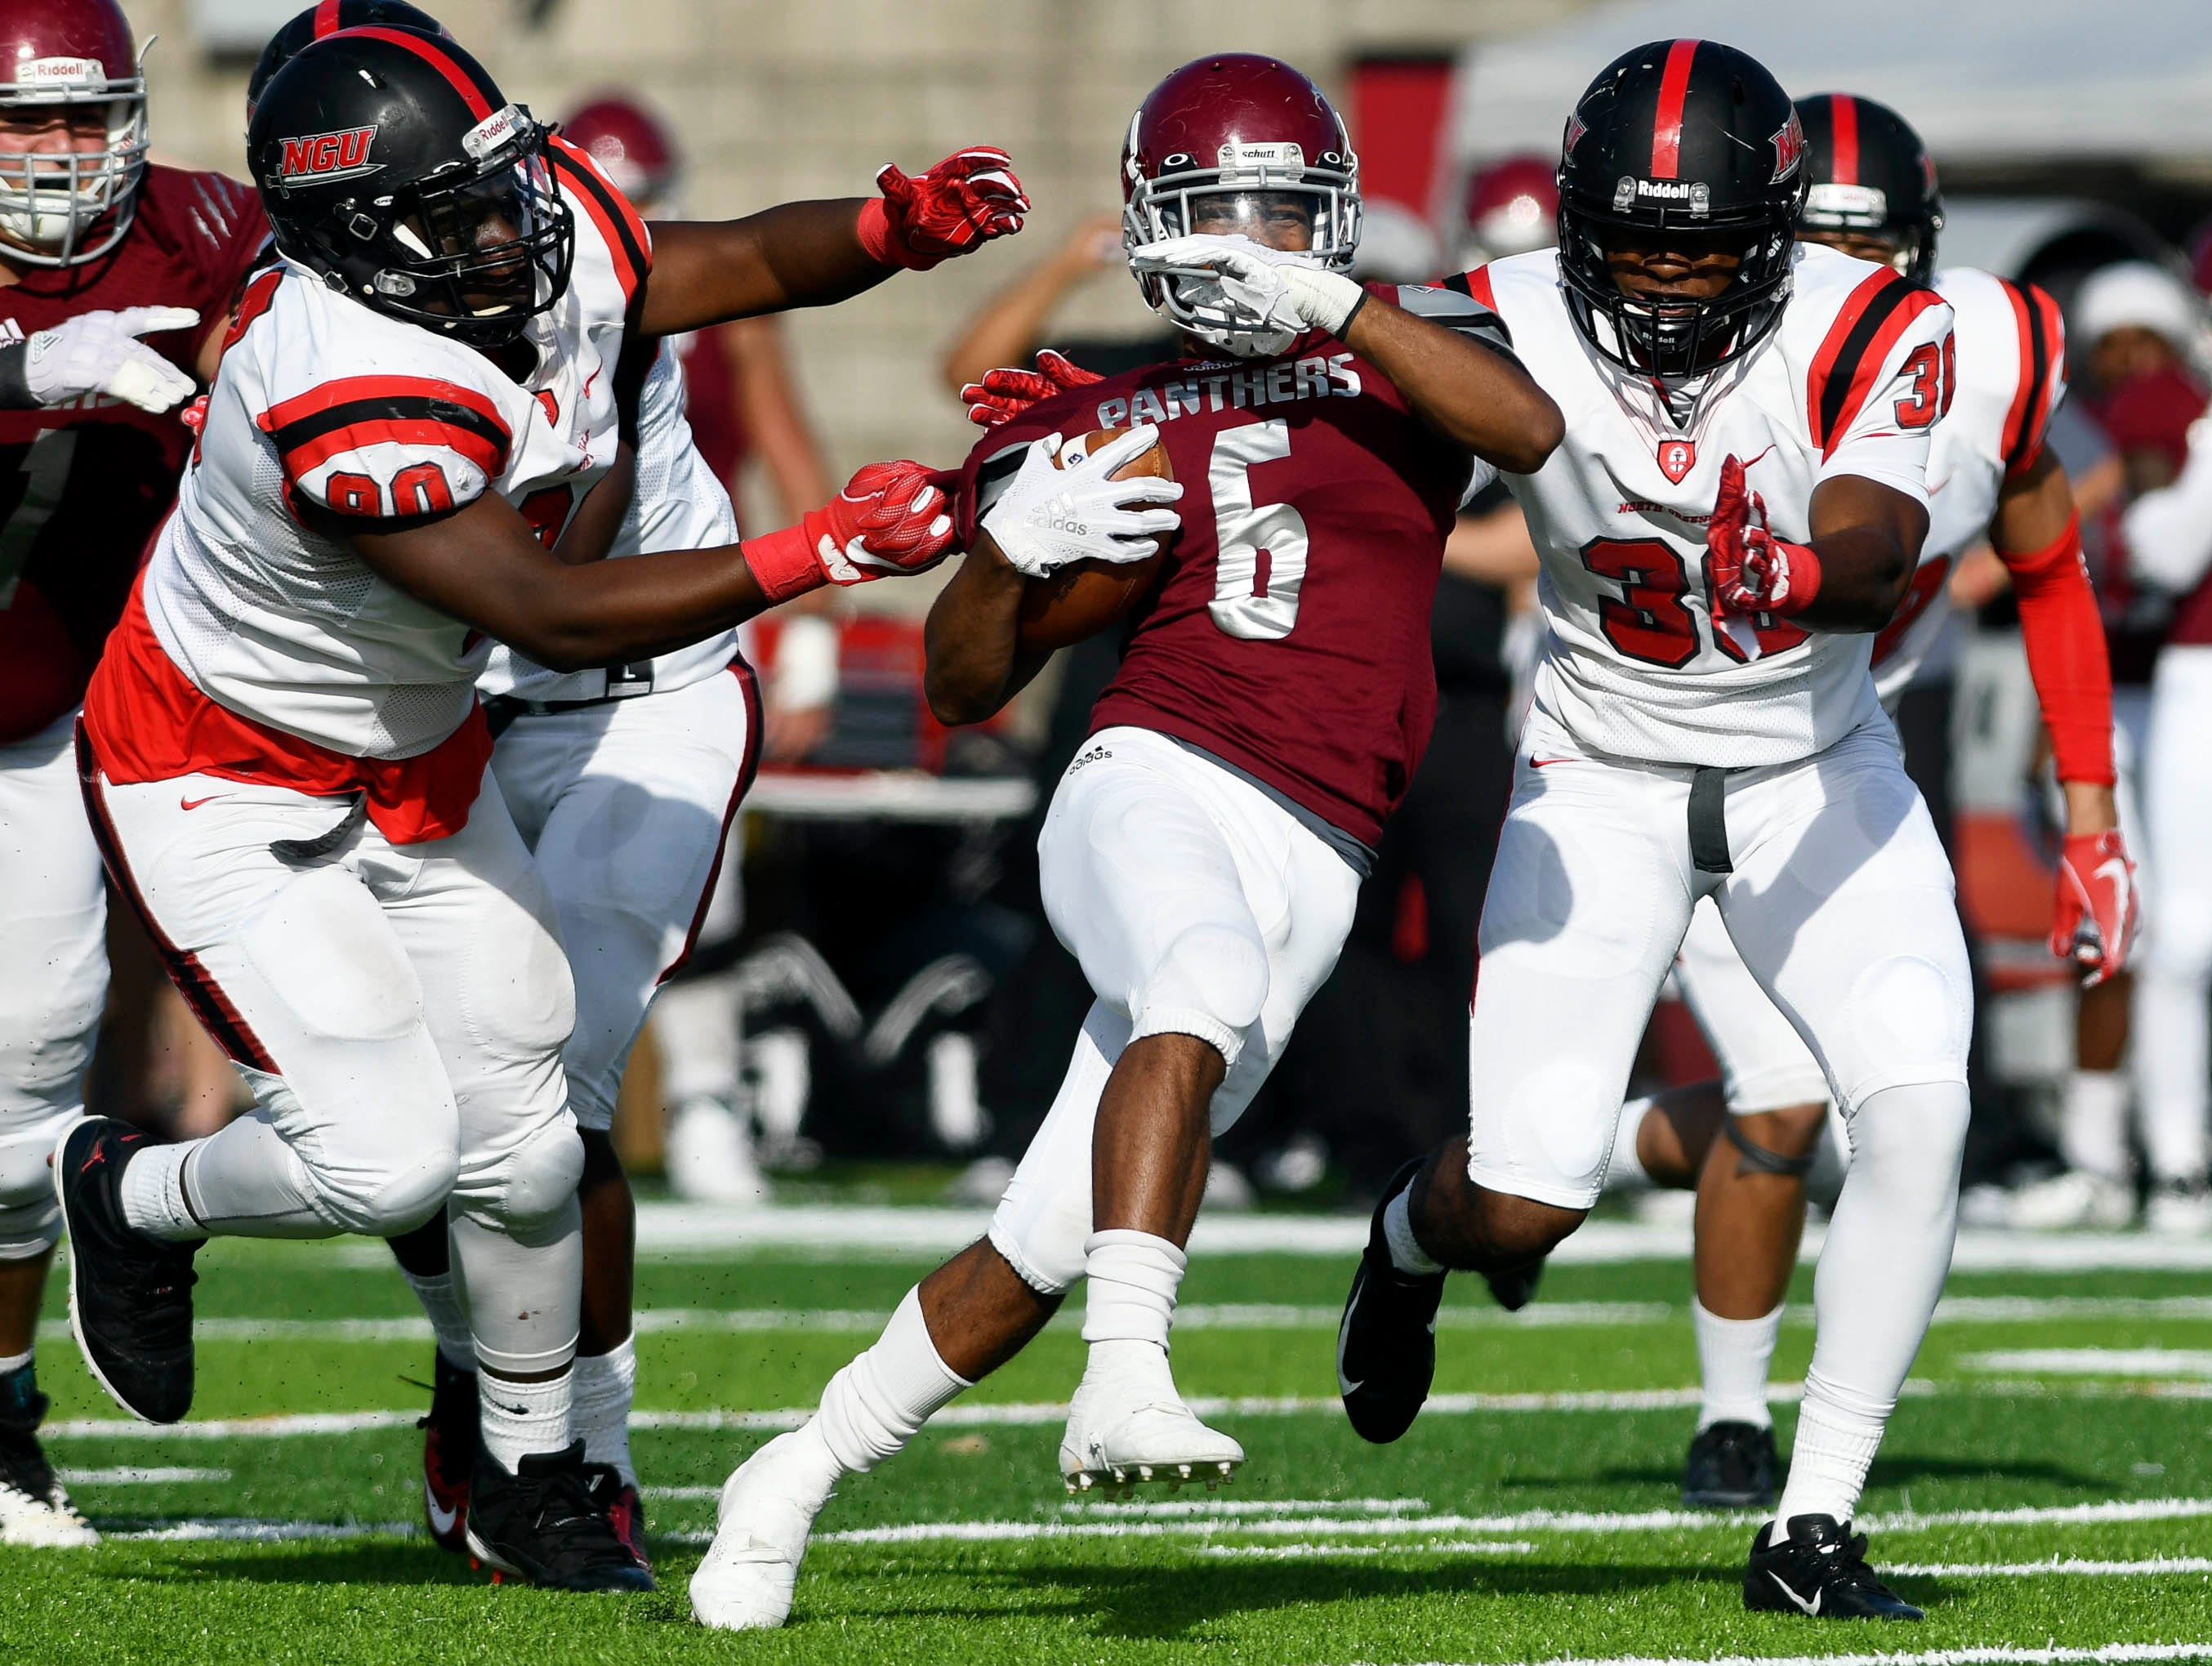 Antwuan Haynes of Florida Tech tries to fight through the tackle of Zeke Stringer (90) and Kendall Brooks (30) of North Greenville during Saturday's game.